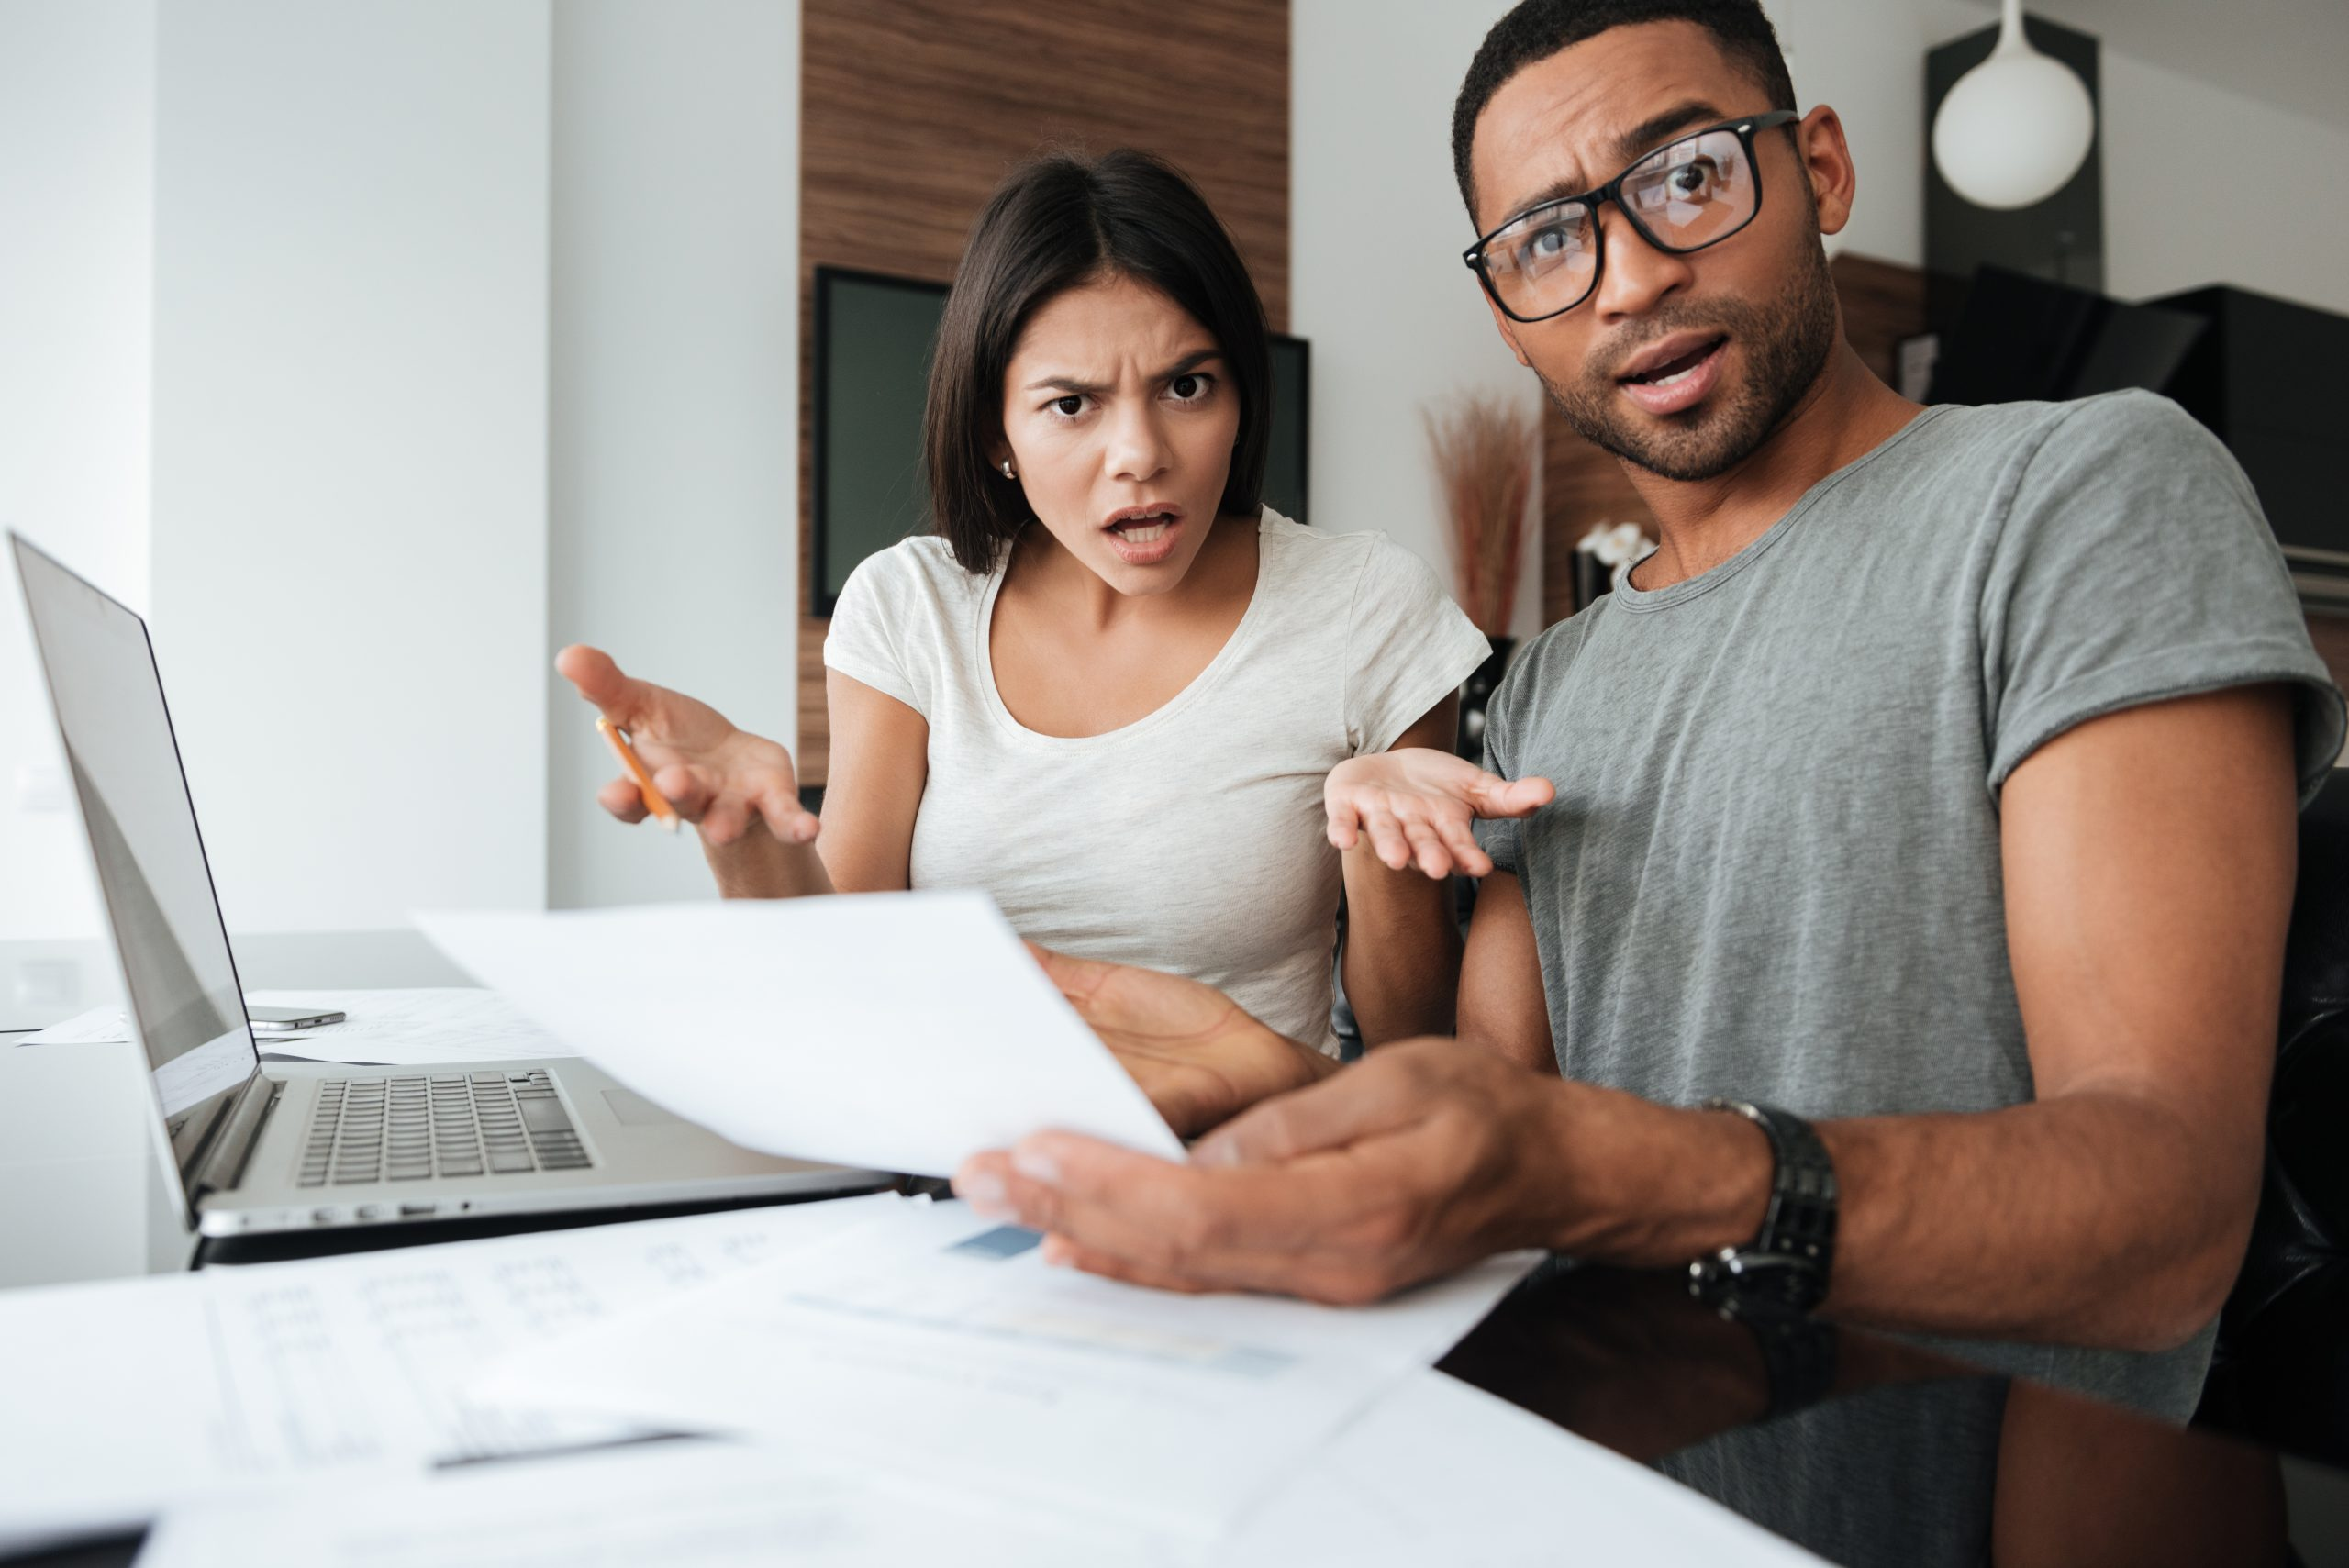 Picture of frustrated man and woman in front of a computer